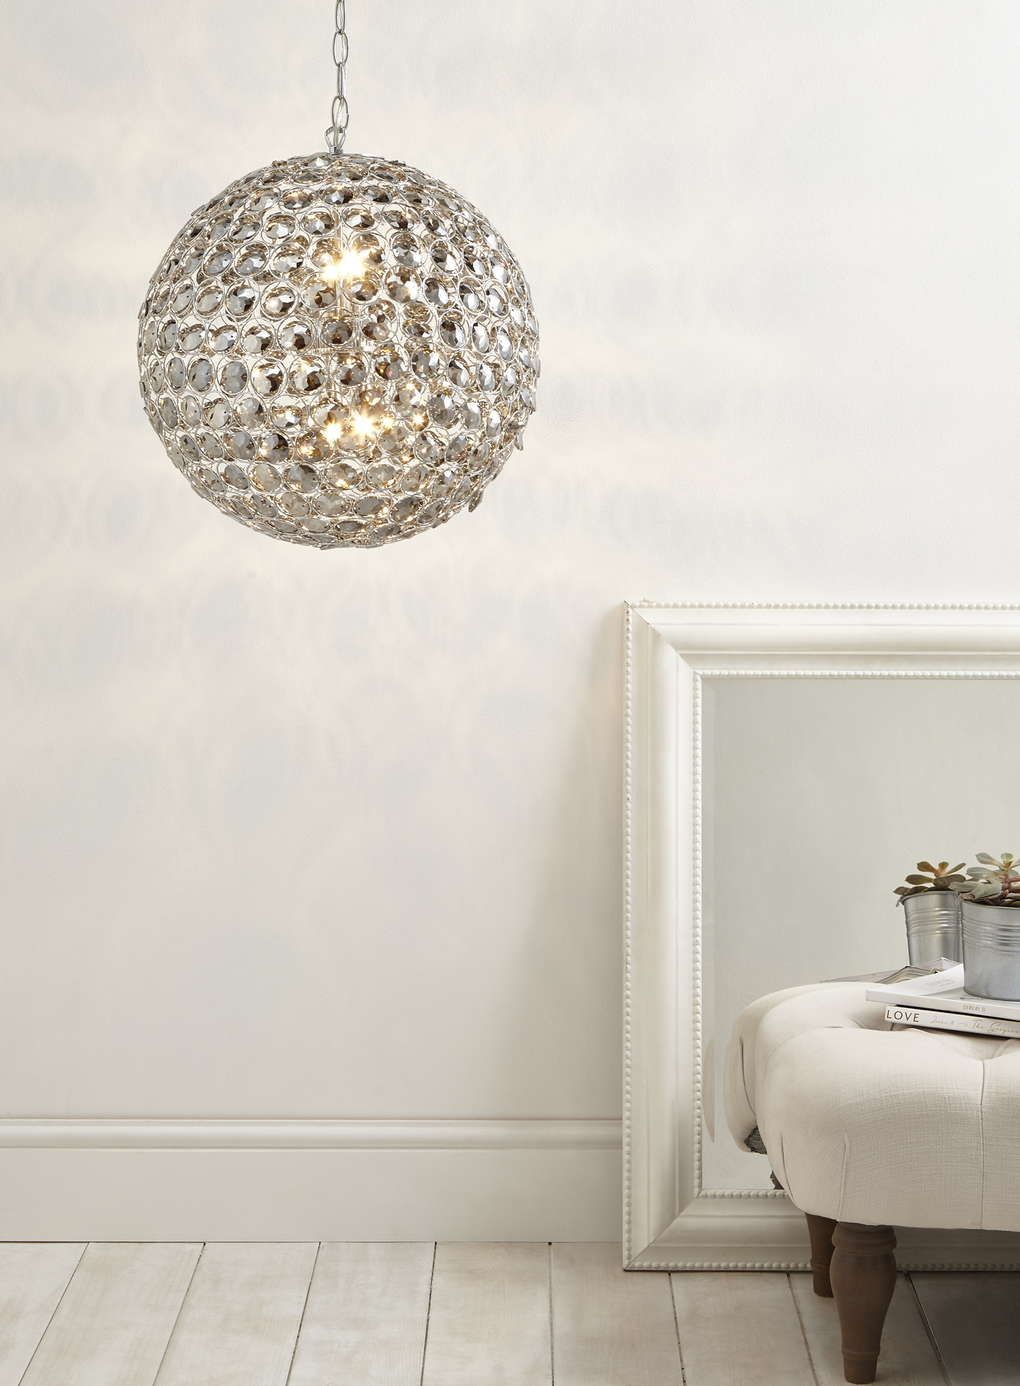 Smoke Pearl Chandelier Pendant - Ceiling Lights - Home, Lighting ...